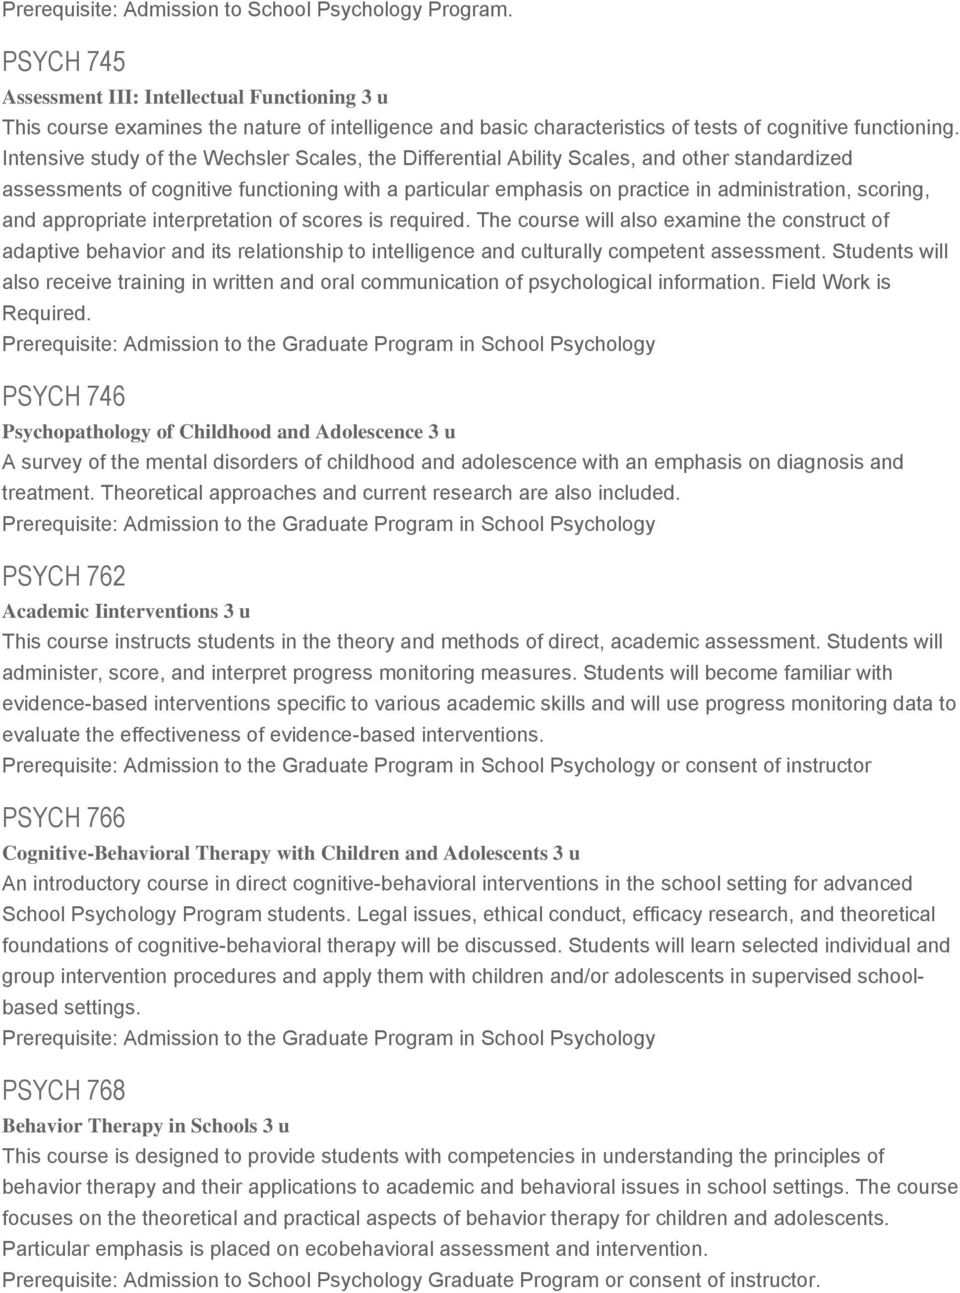 Intensive study of the Wechsler Scales, the Differential Ability Scales, and other standardized assessments of cognitive functioning with a particular emphasis on practice in administration, scoring,